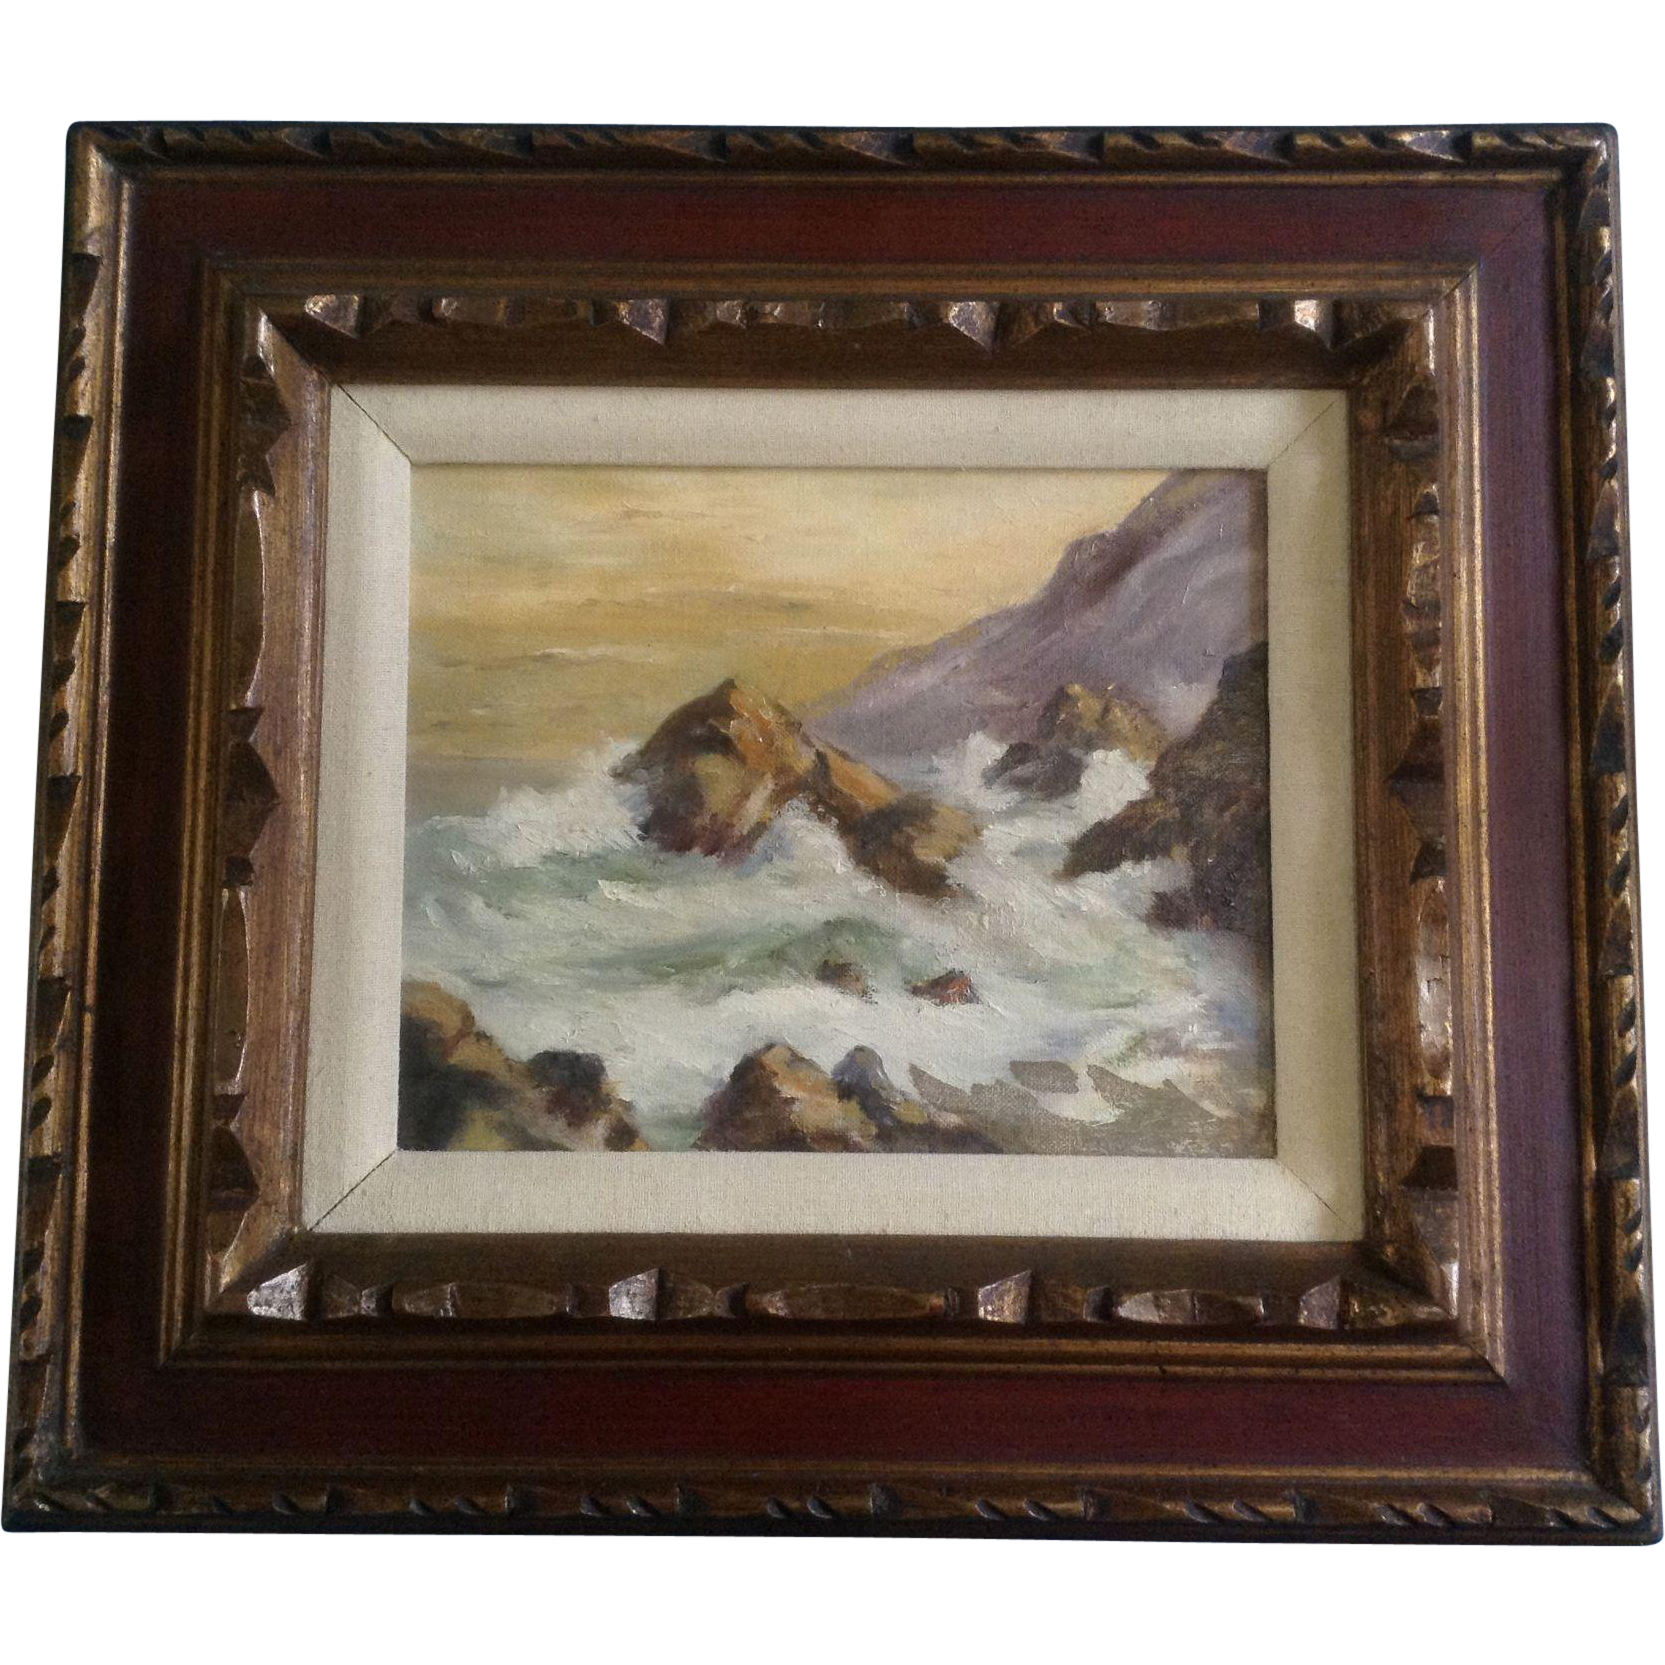 Maret Oil Painting Coastal View Of Waves Crashing On The